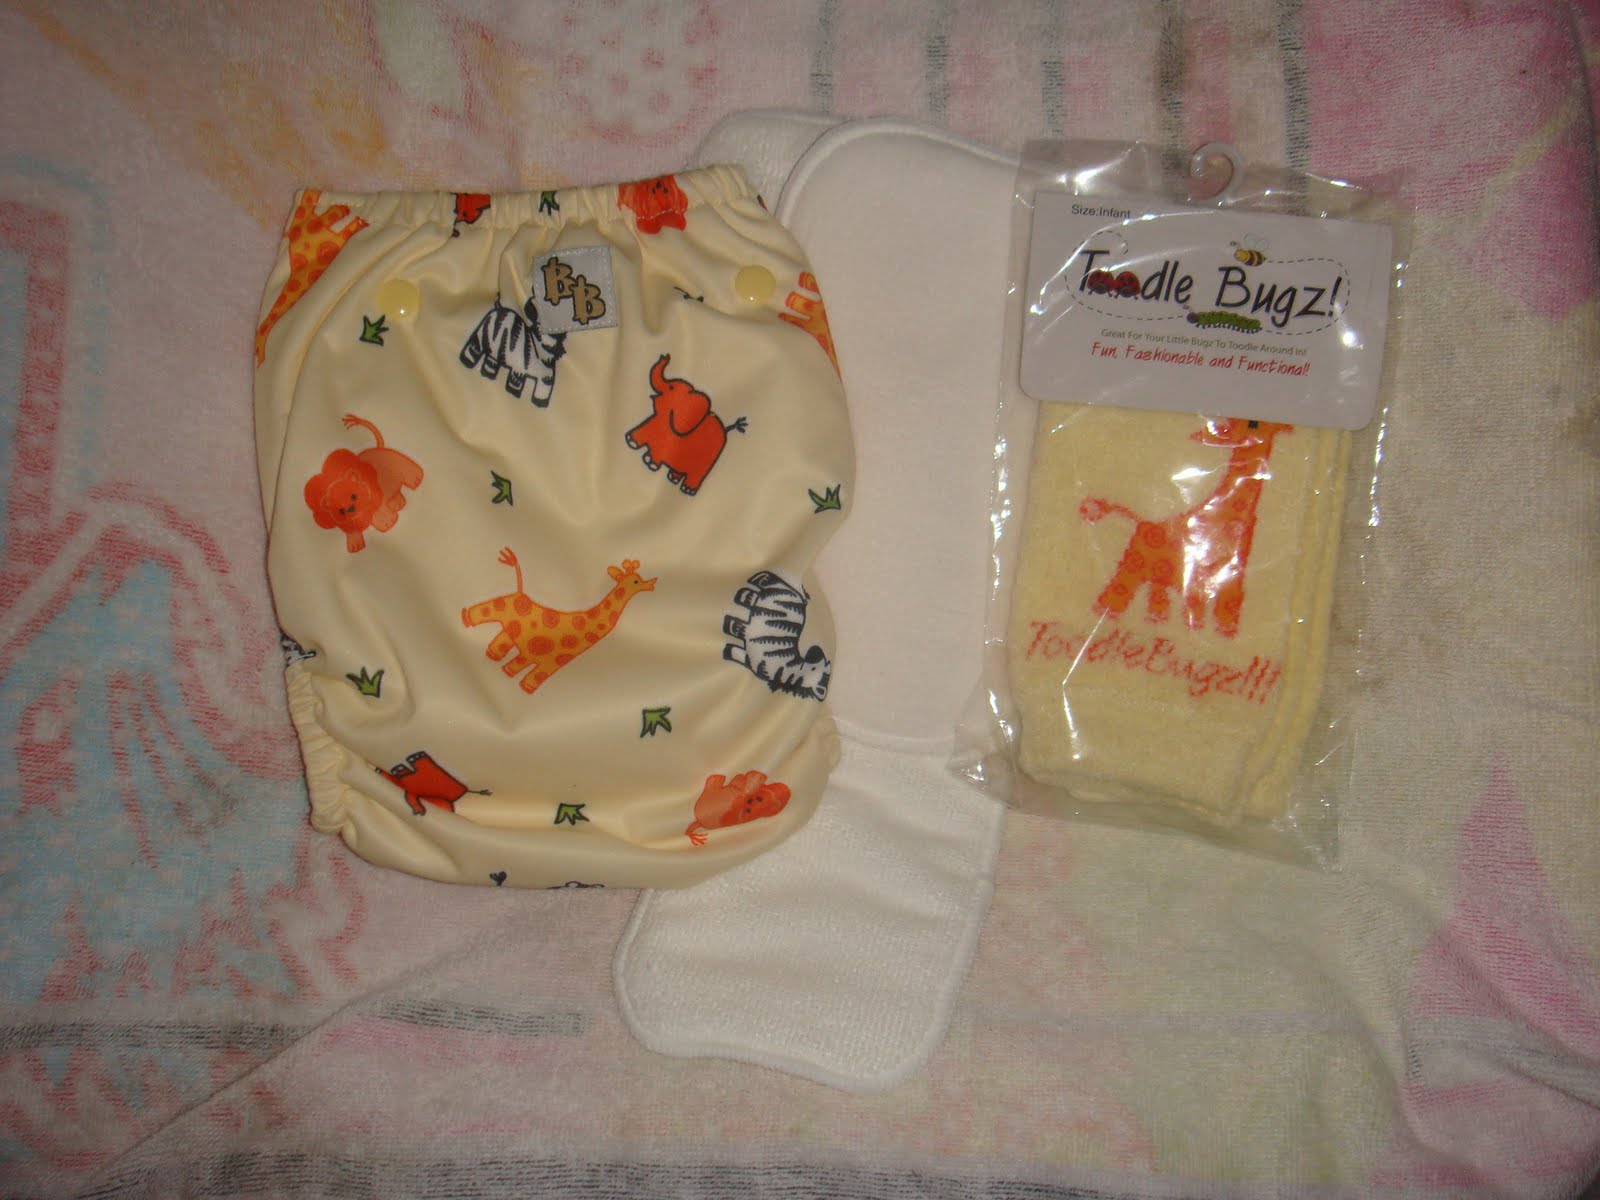 The maker of Fishnoodles diapers has created a new diaper line called Bright ...